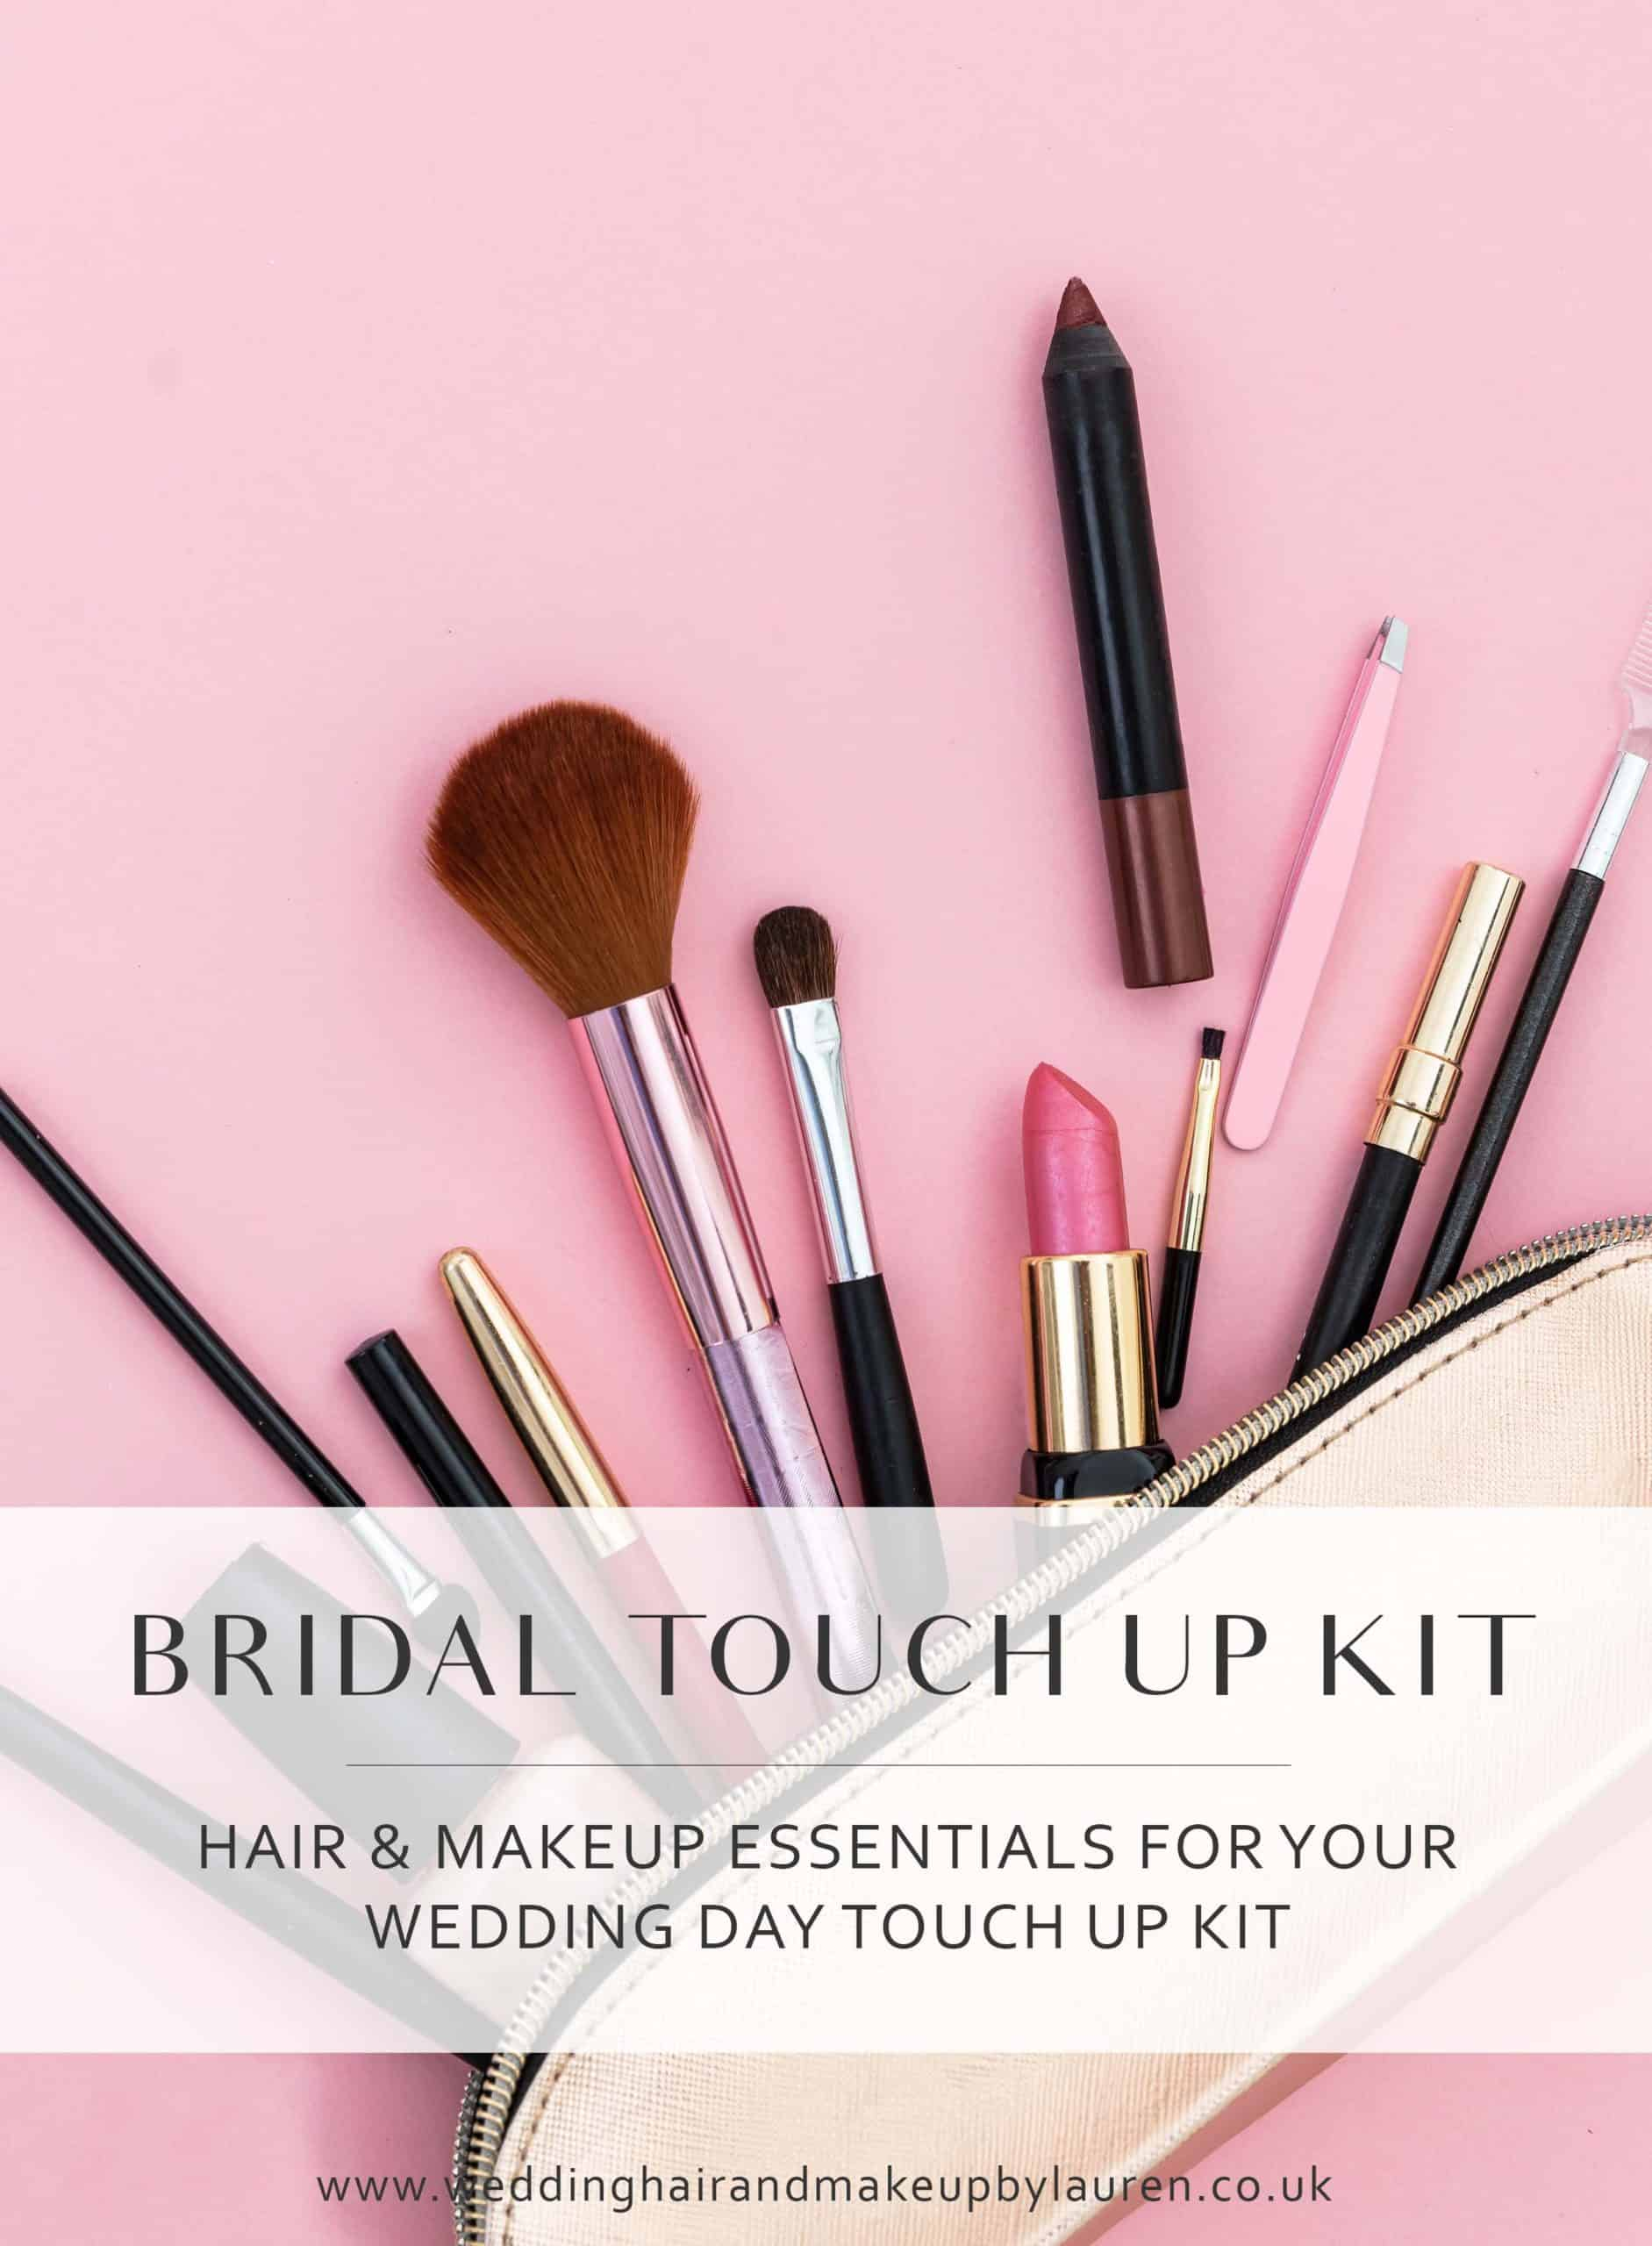 Hair & Makeup Essentials